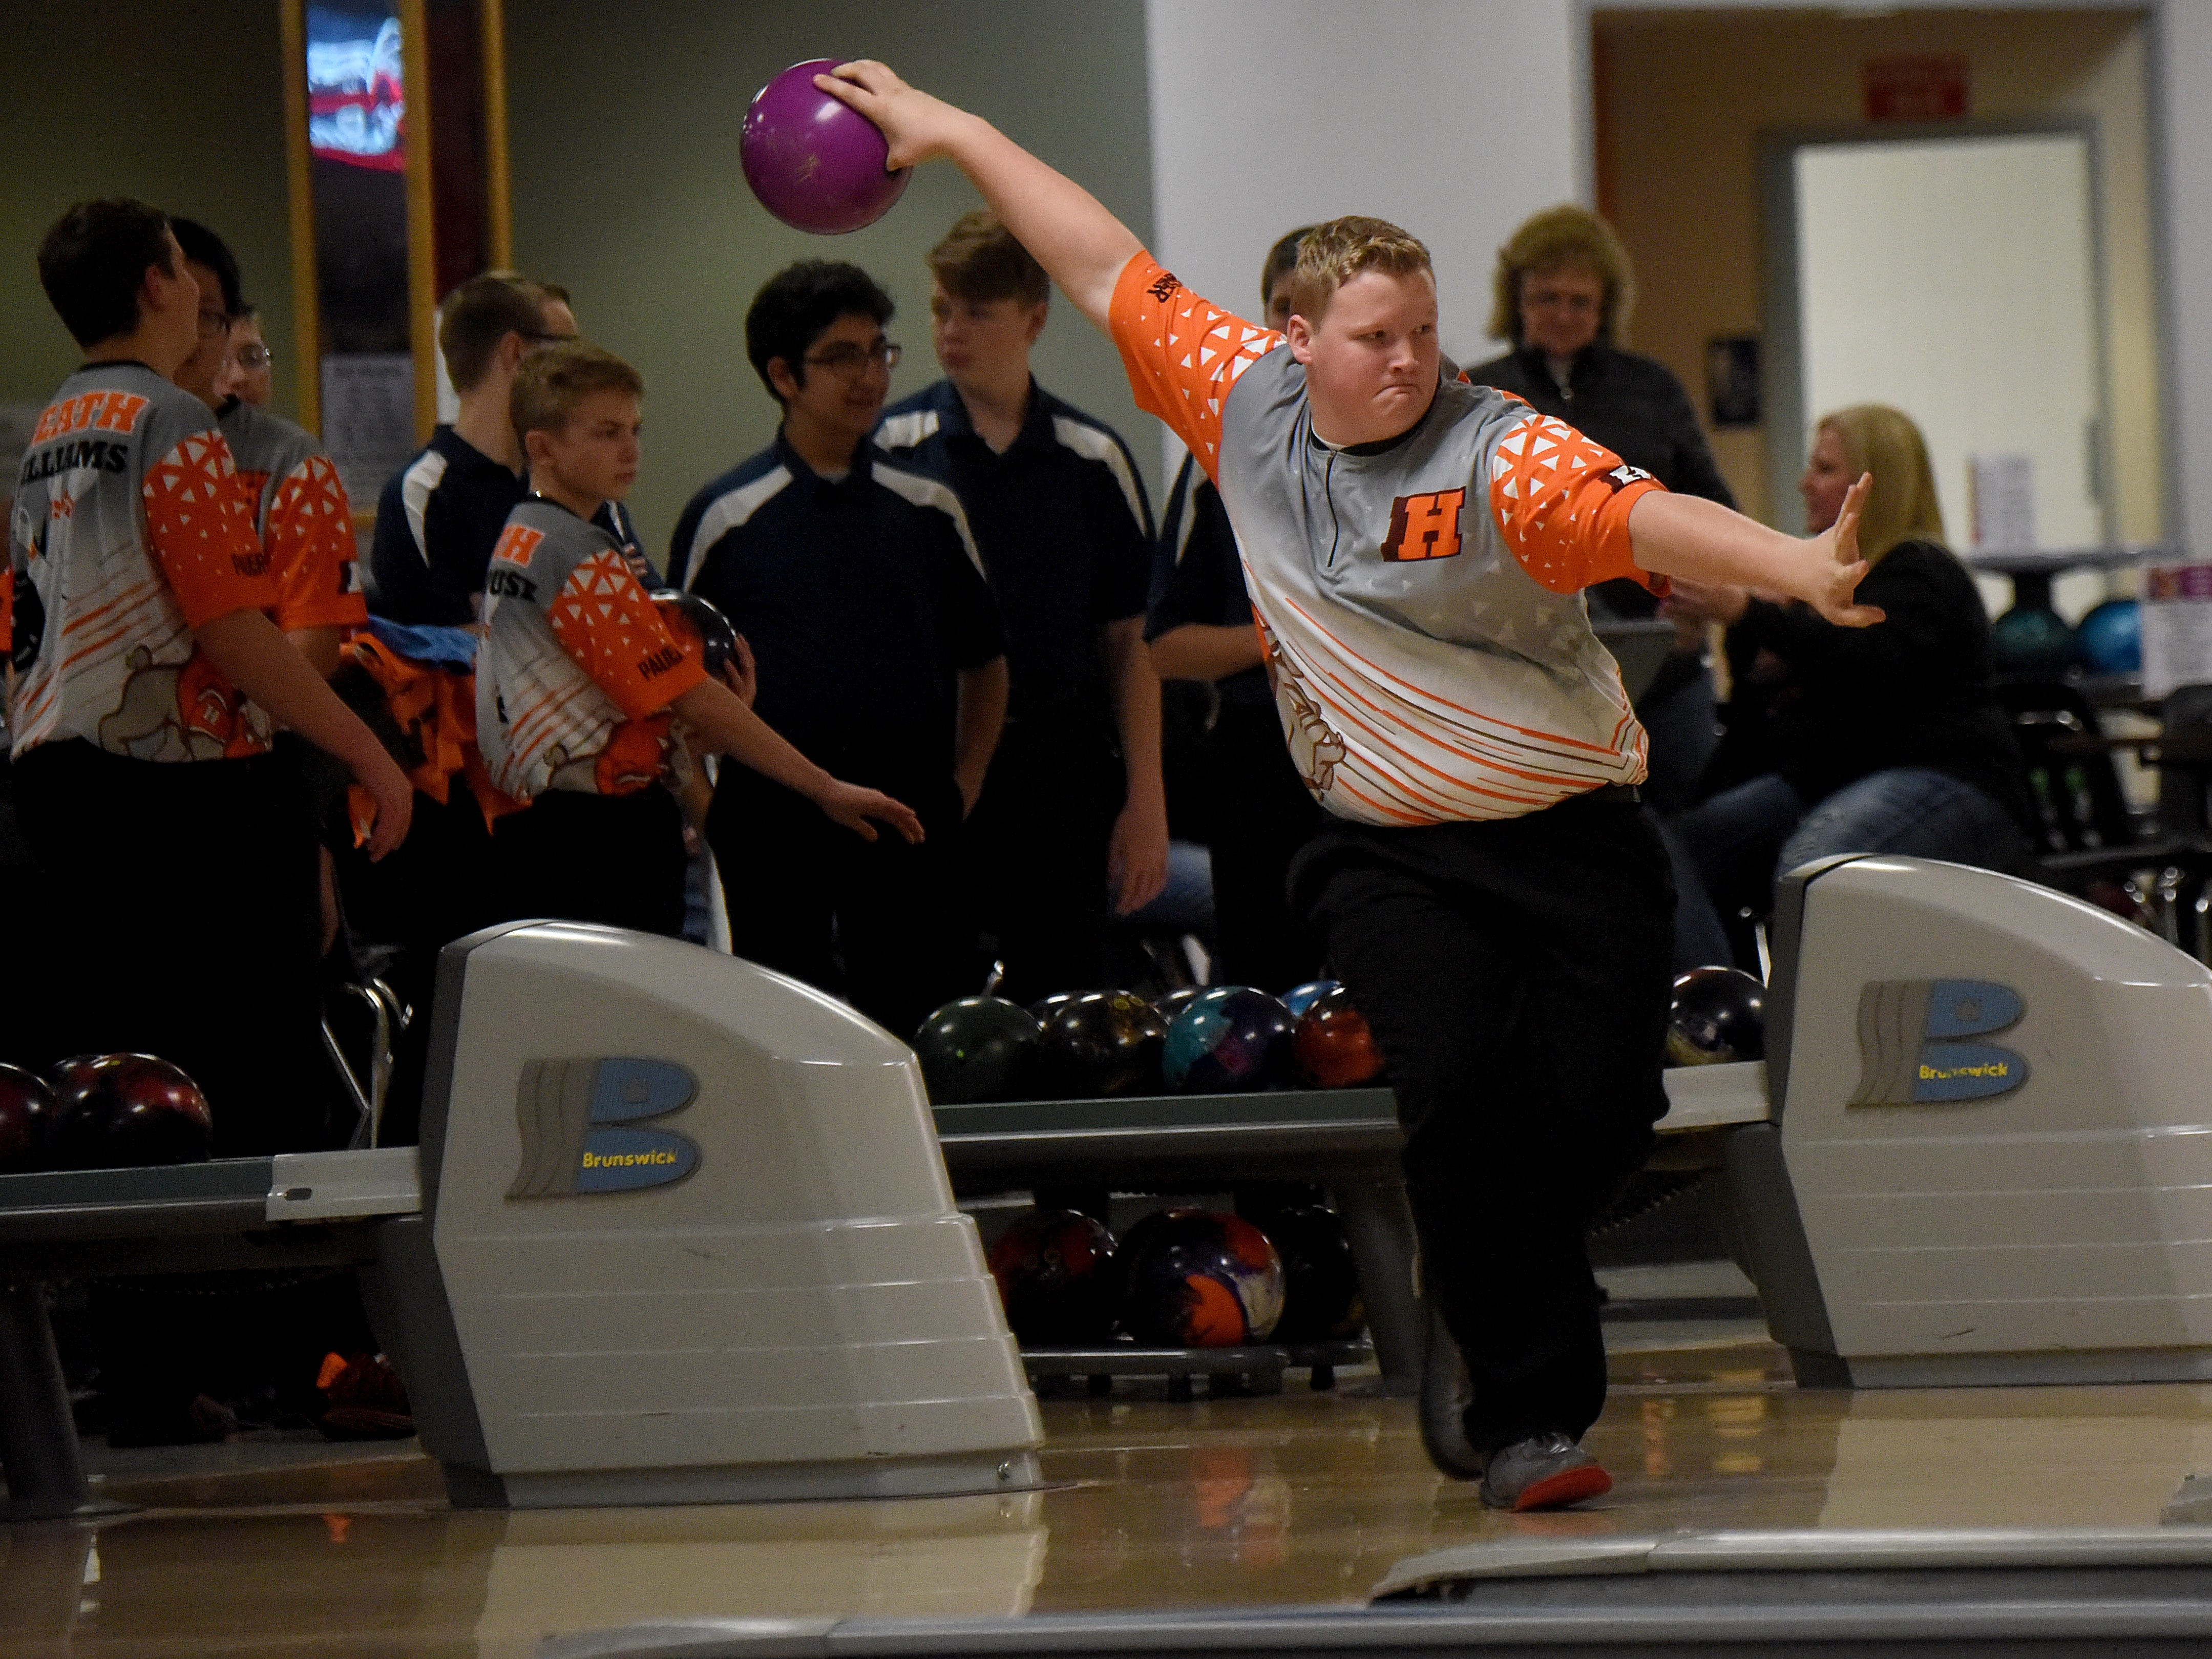 Heath sophomore Korbin Wilson bowls with the Bulldogs' bowling team against Granville in an LCL match on Thursday, Jan. 17, 2019, at Park Lanes in Heath.